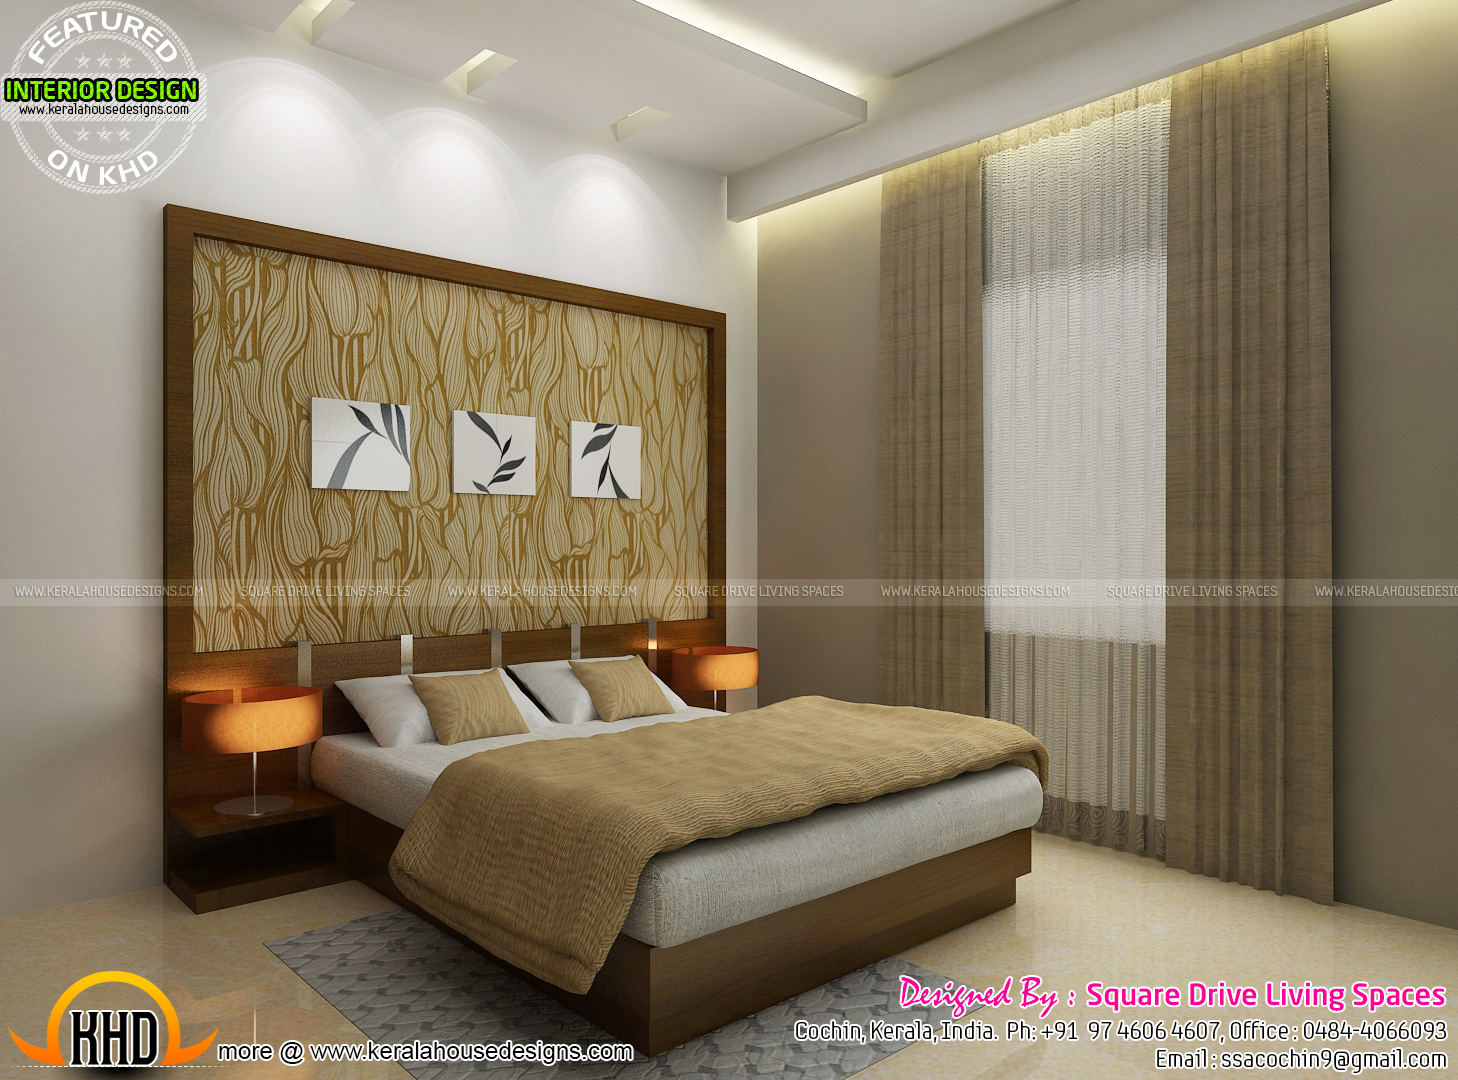 Interior designs of master bedroom living kitchen and for Interiors by design